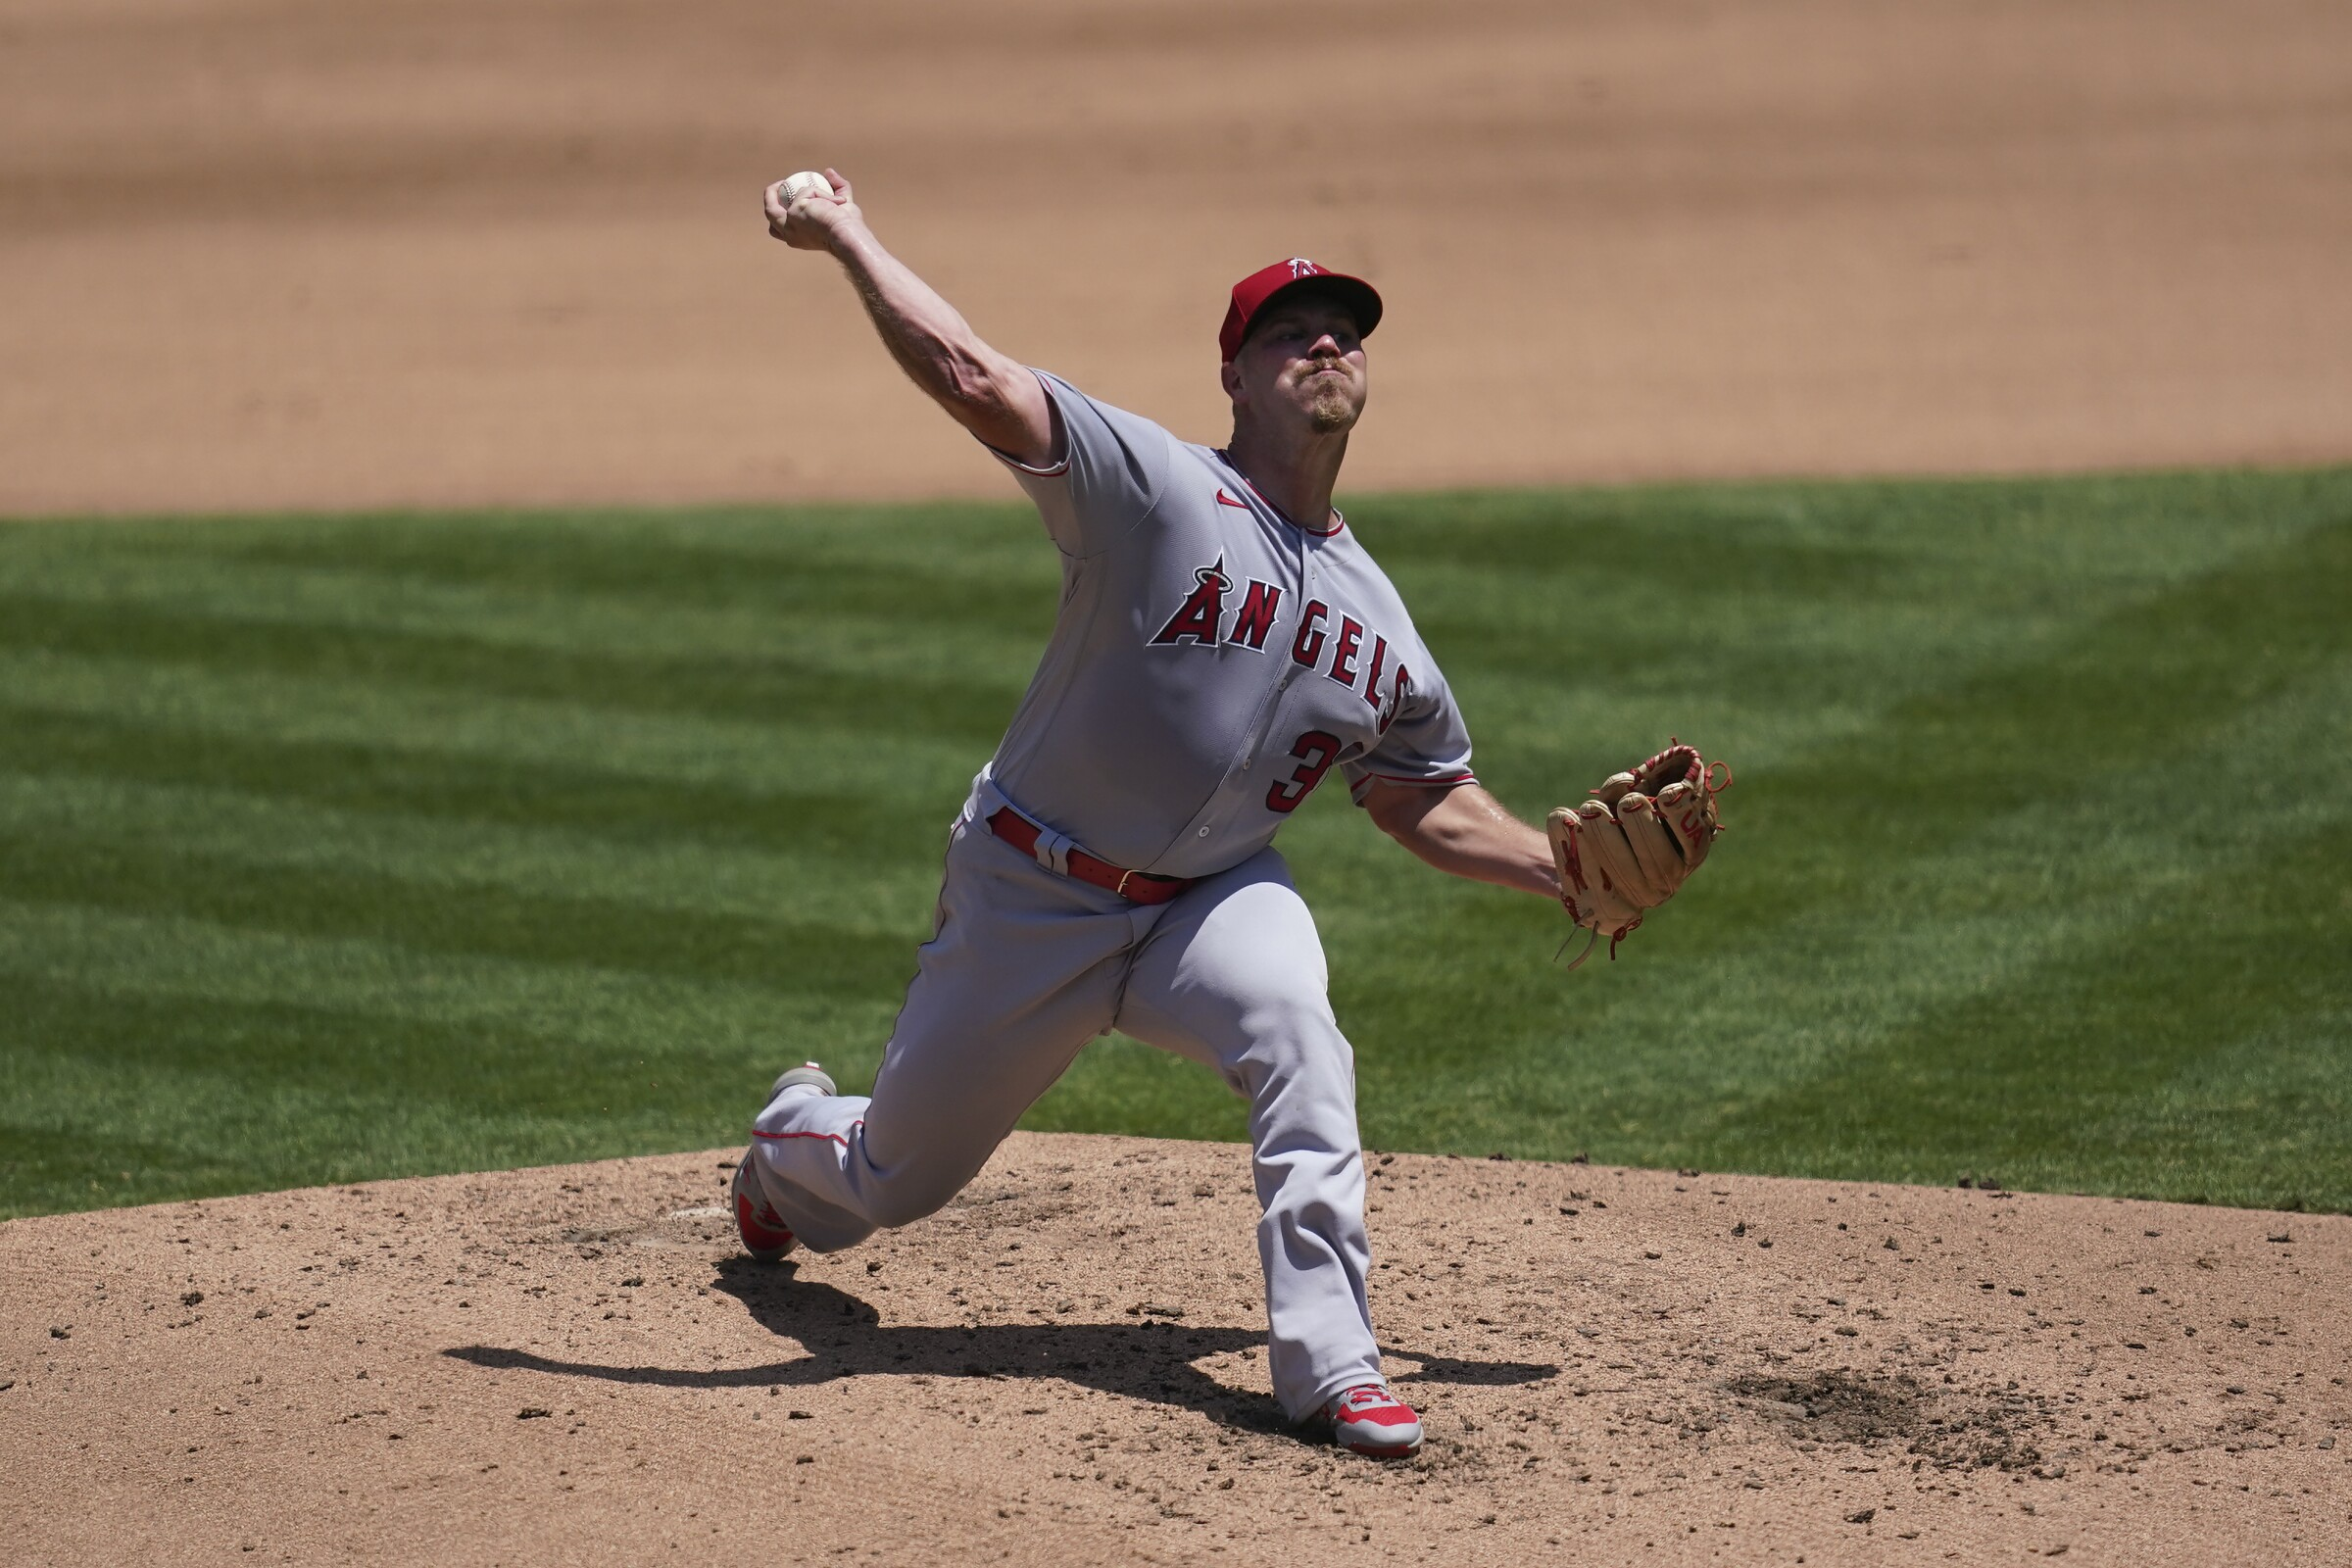 Angels pitcher Dylan Bundy throws against the Oakland Athletics on July 25.